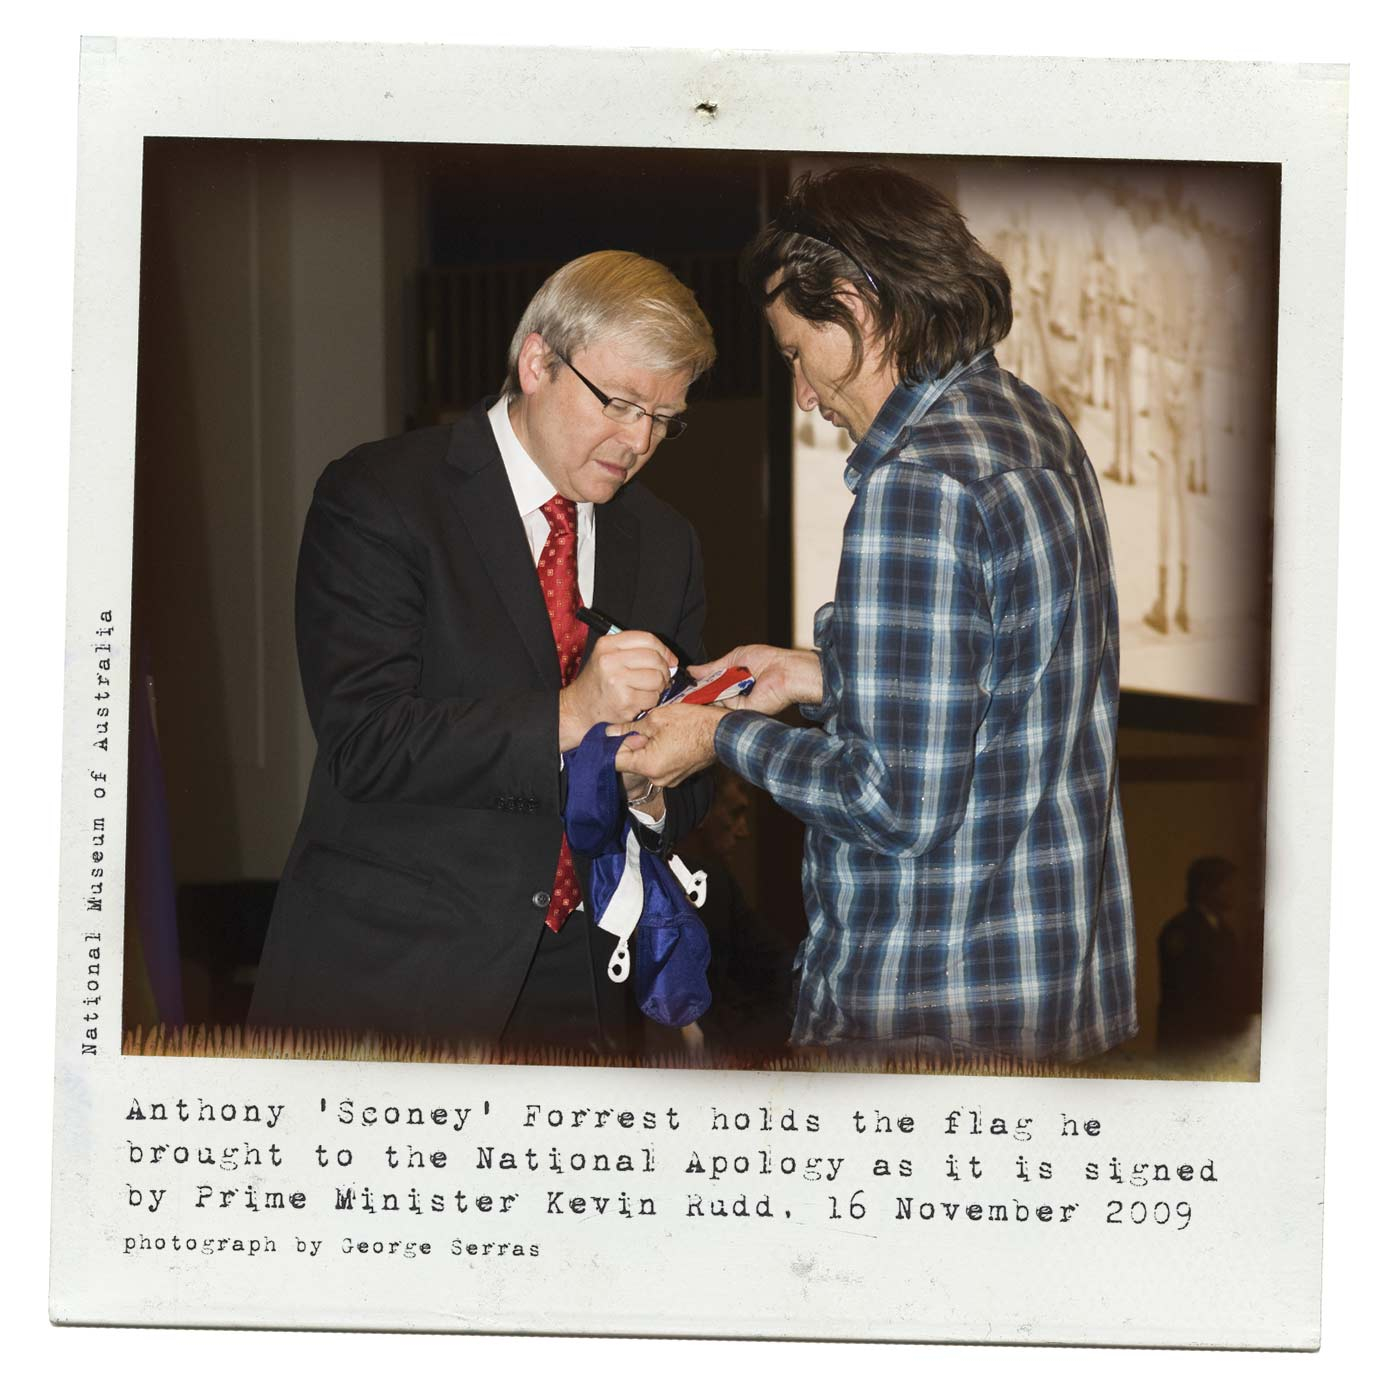 A Polaroid photo showing a side view of two men. A man in a suit, on the left, uses a texta to sign an Australian flag being held by the man on the right. Typewritten text at the bottom reads: 'Anthony 'Sconey' Forrest holds the flag he brought to the National Apology as it is signed by Prime Minister Kevin Rudd 16 November 2009. Photograph by George Serras'. - click to view larger image